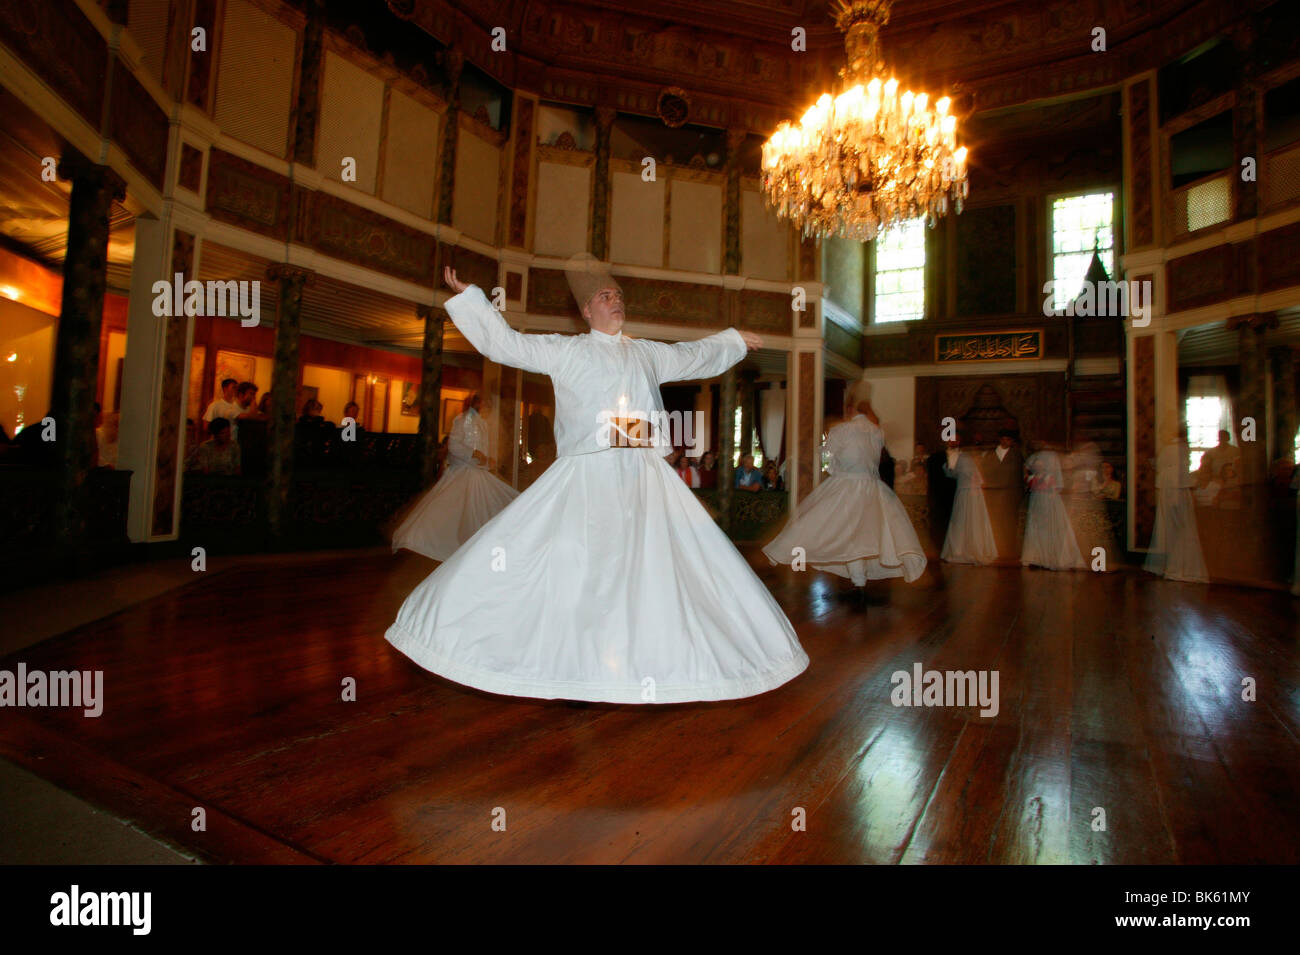 Whirling dervishes at Uskudar's convent, Istanbul, Turkey, Europe - Stock Image